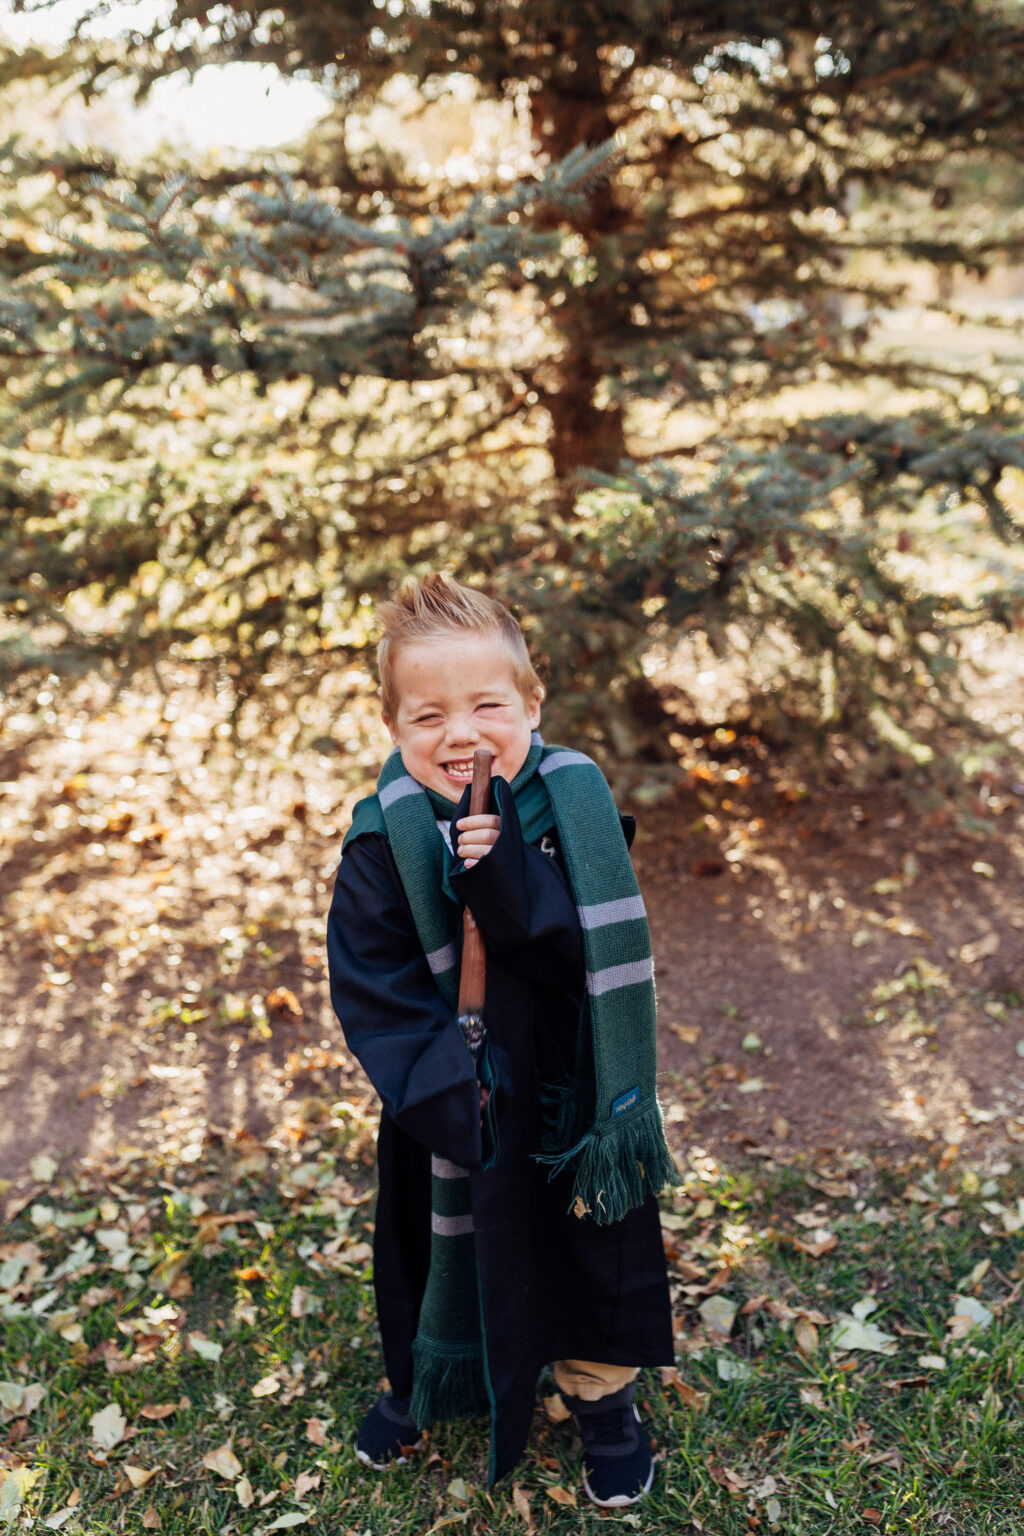 This Little Malfoy is melting my heart!